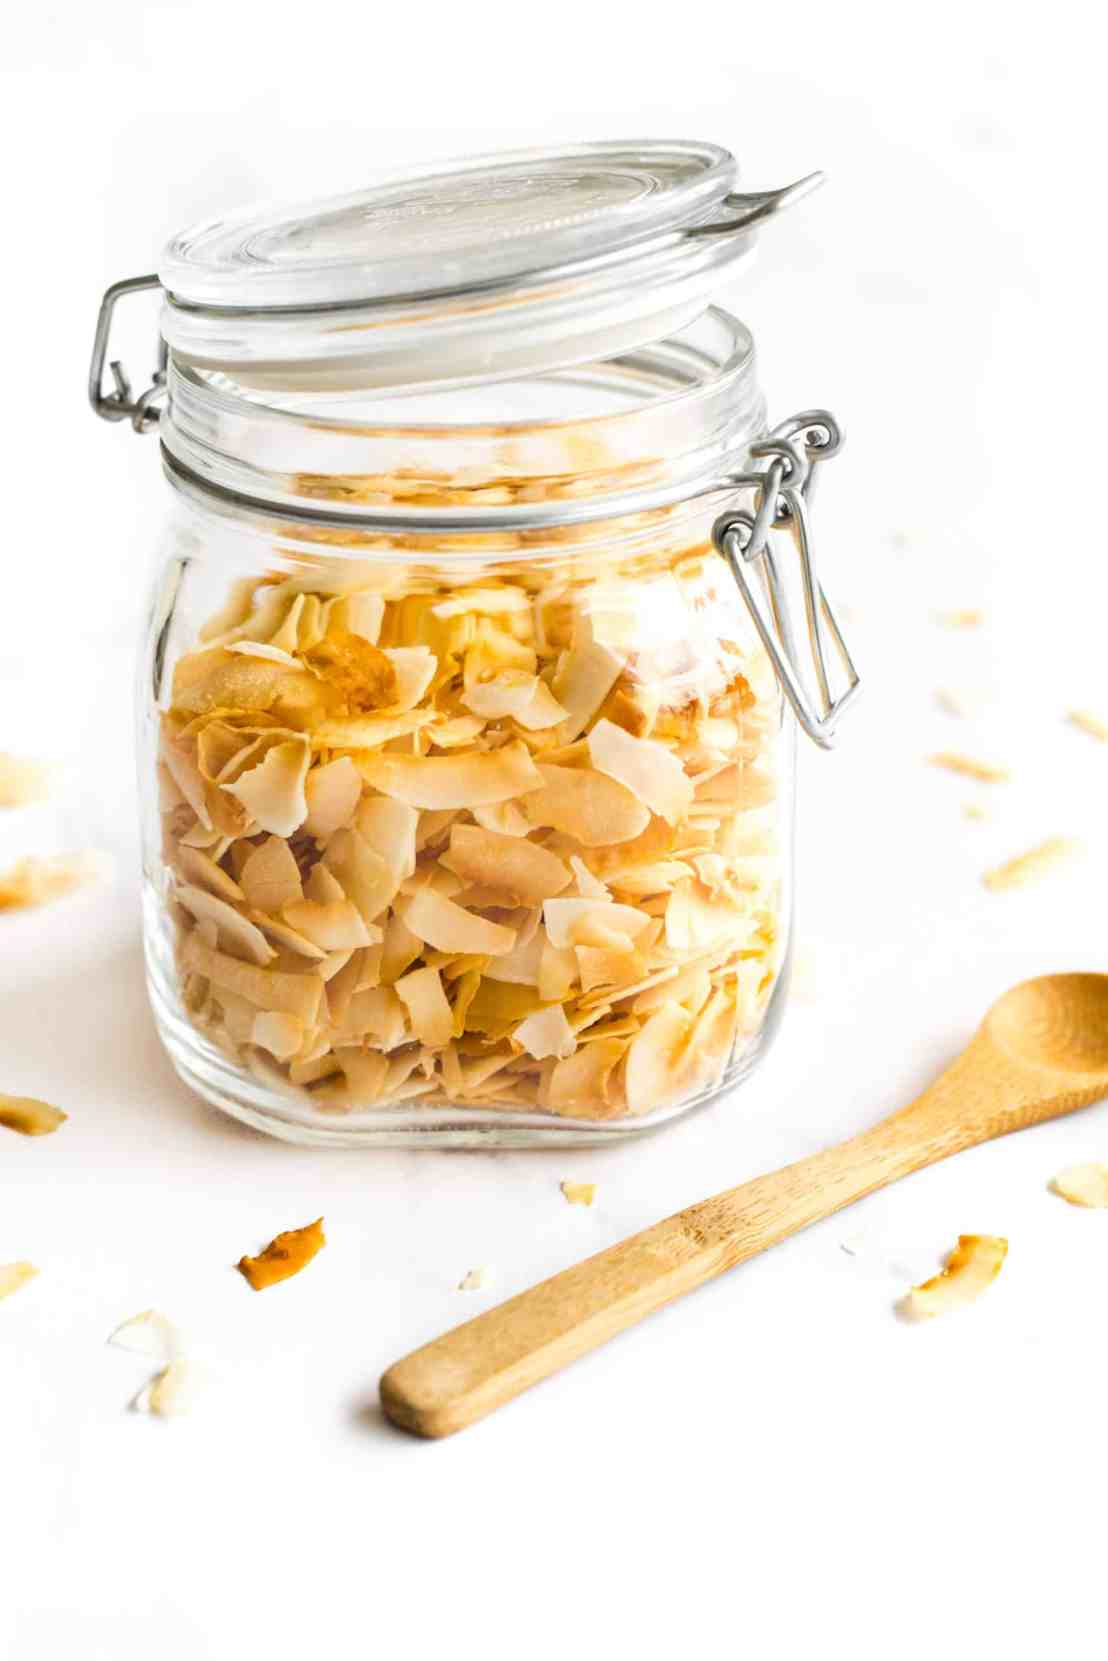 Toasted-Coconut-Chips-Gluten-Free-Vegan_Final6-1-scaled